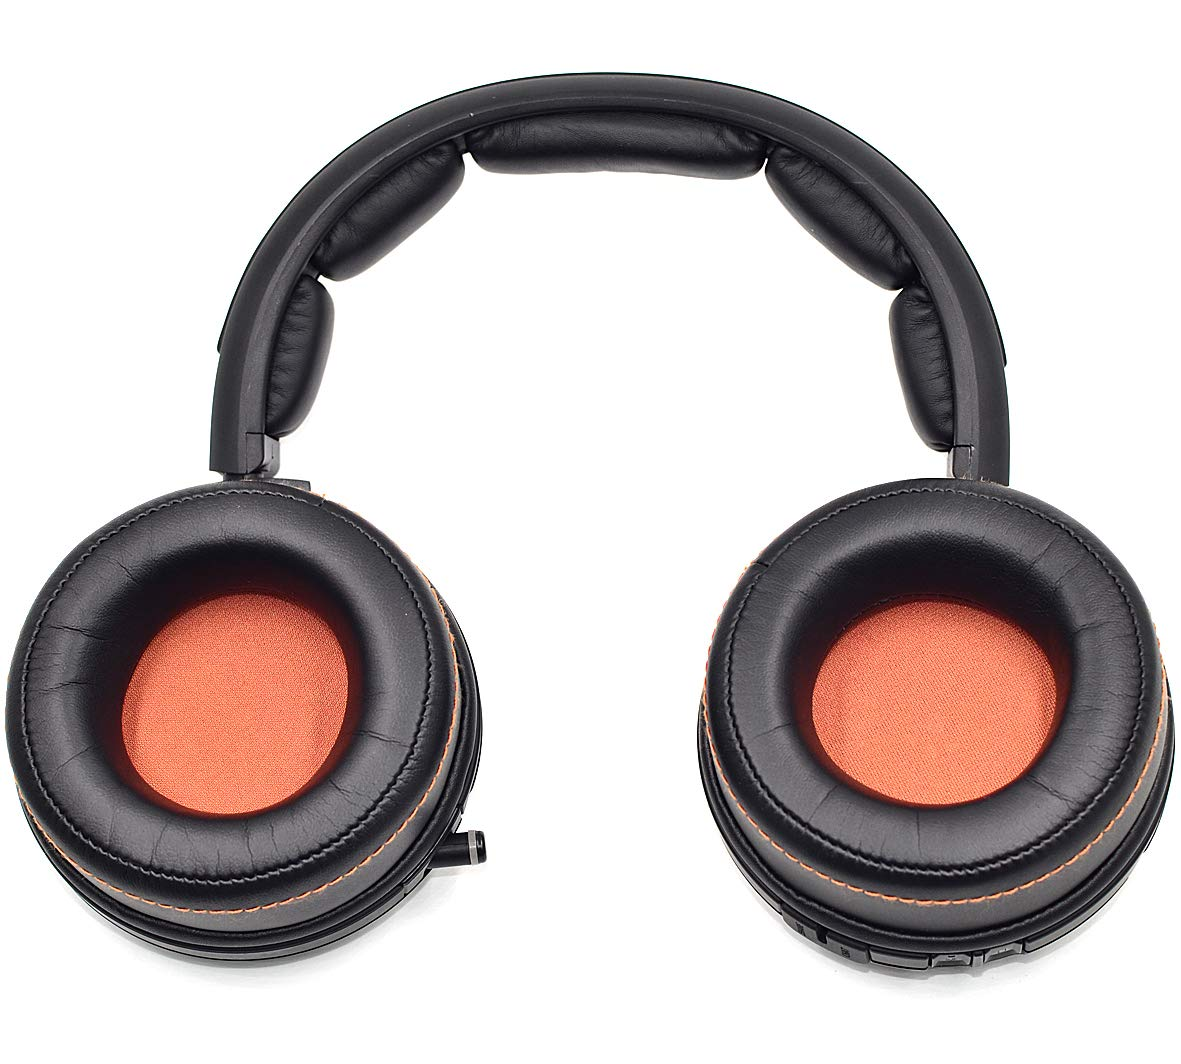 YSAGi Spare replacement foam ear cushion earmuffs for <font><b>SteelSeries</b></font> <font><b>Siberia</b></font> 840 <font><b>800</b></font> gaming headset accessories image